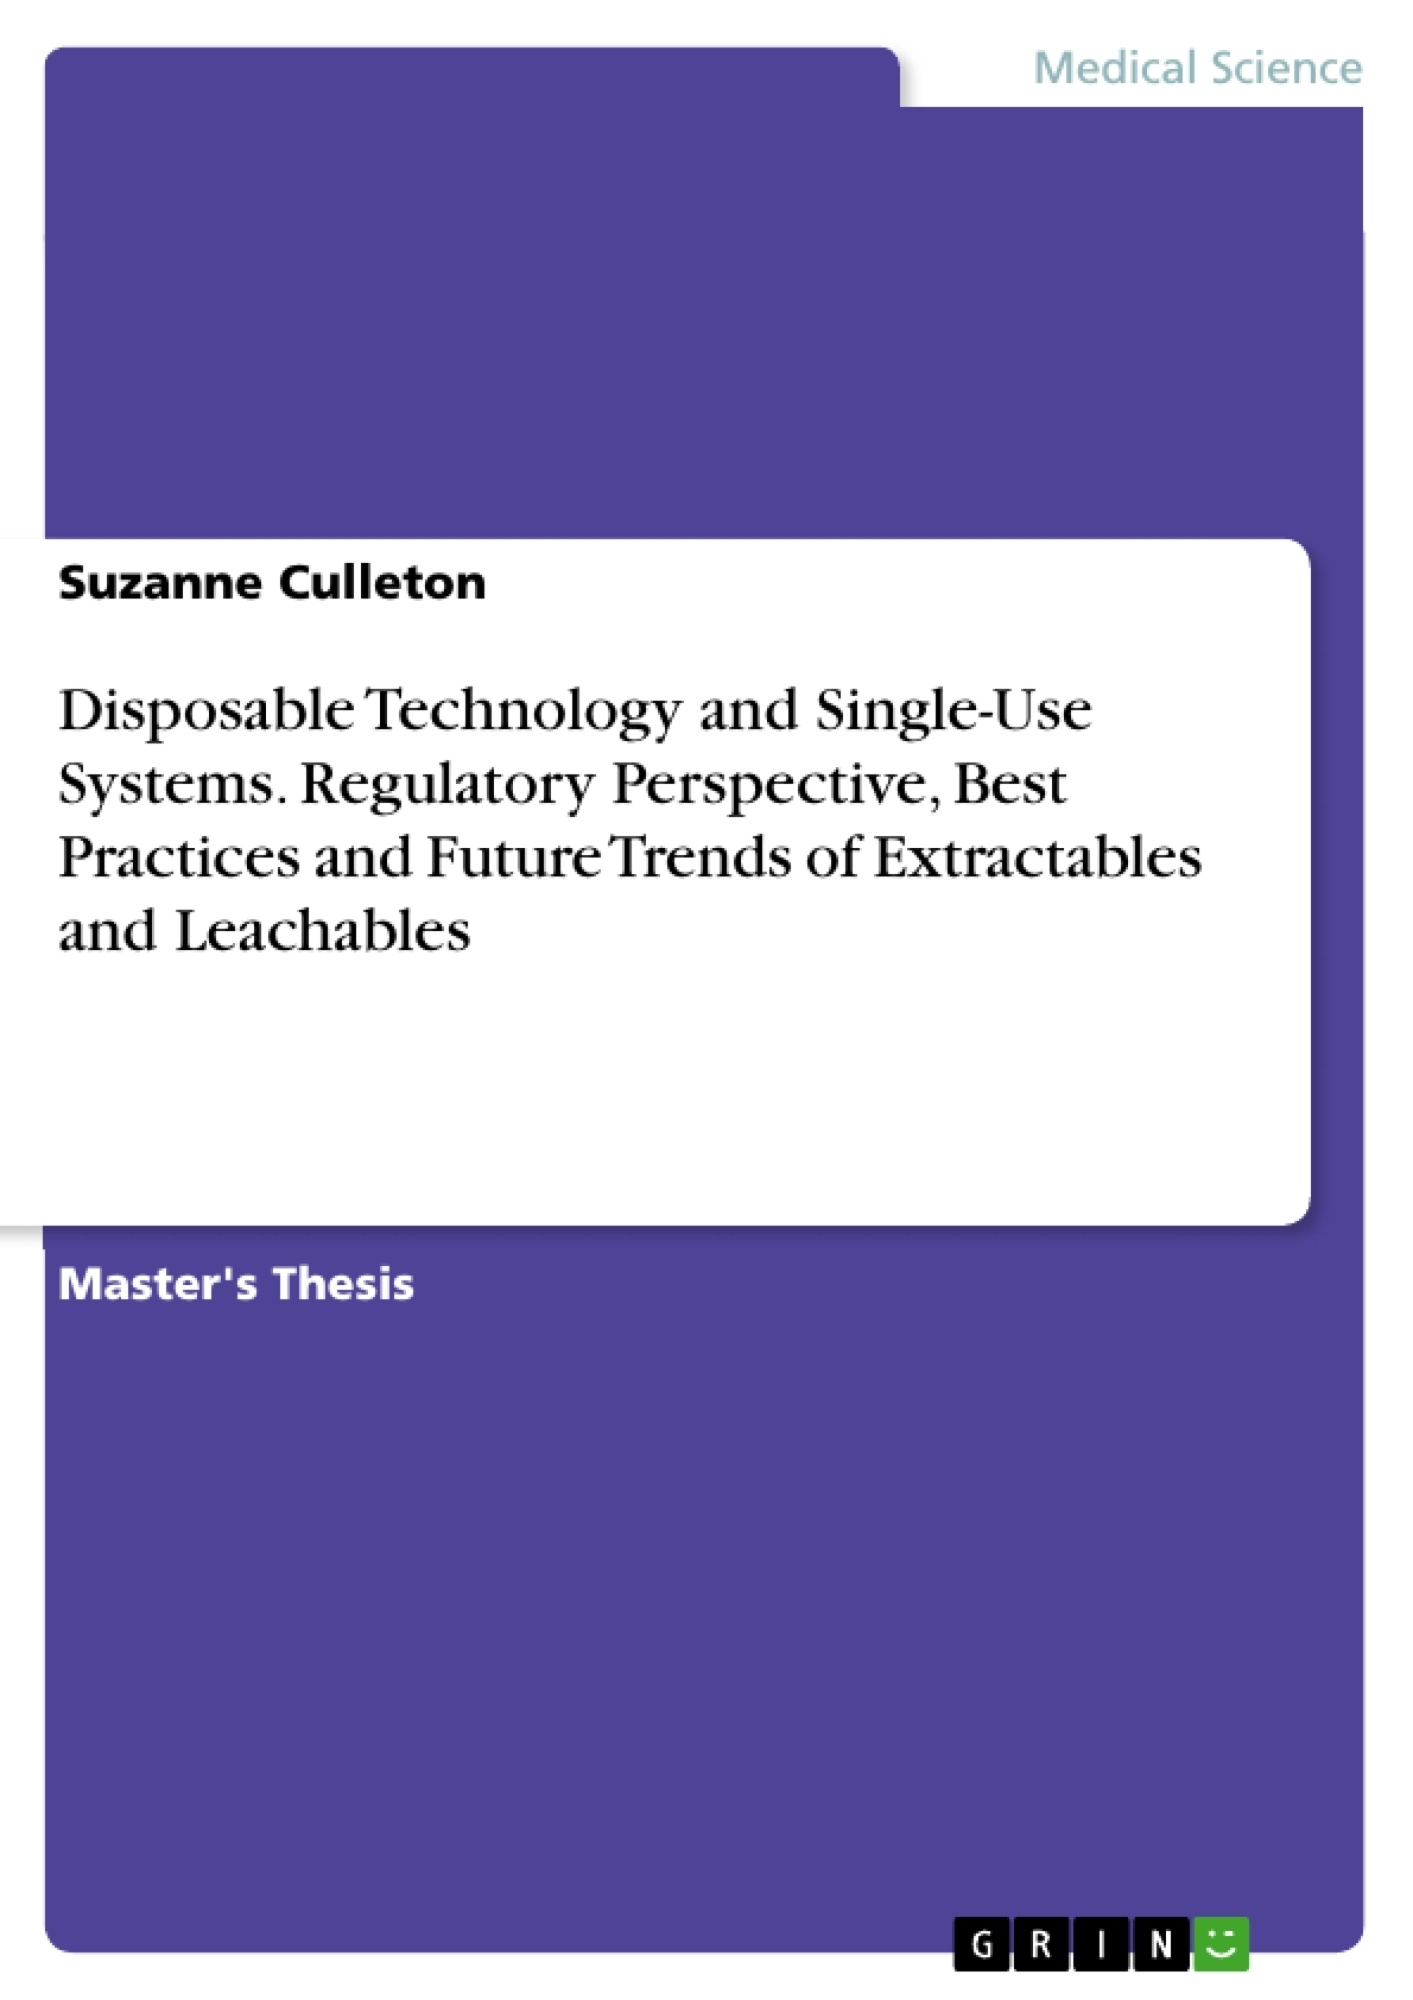 Title: Disposable Technology and Single-Use Systems. Regulatory Perspective, Best Practices and Future Trends of Extractables and Leachables